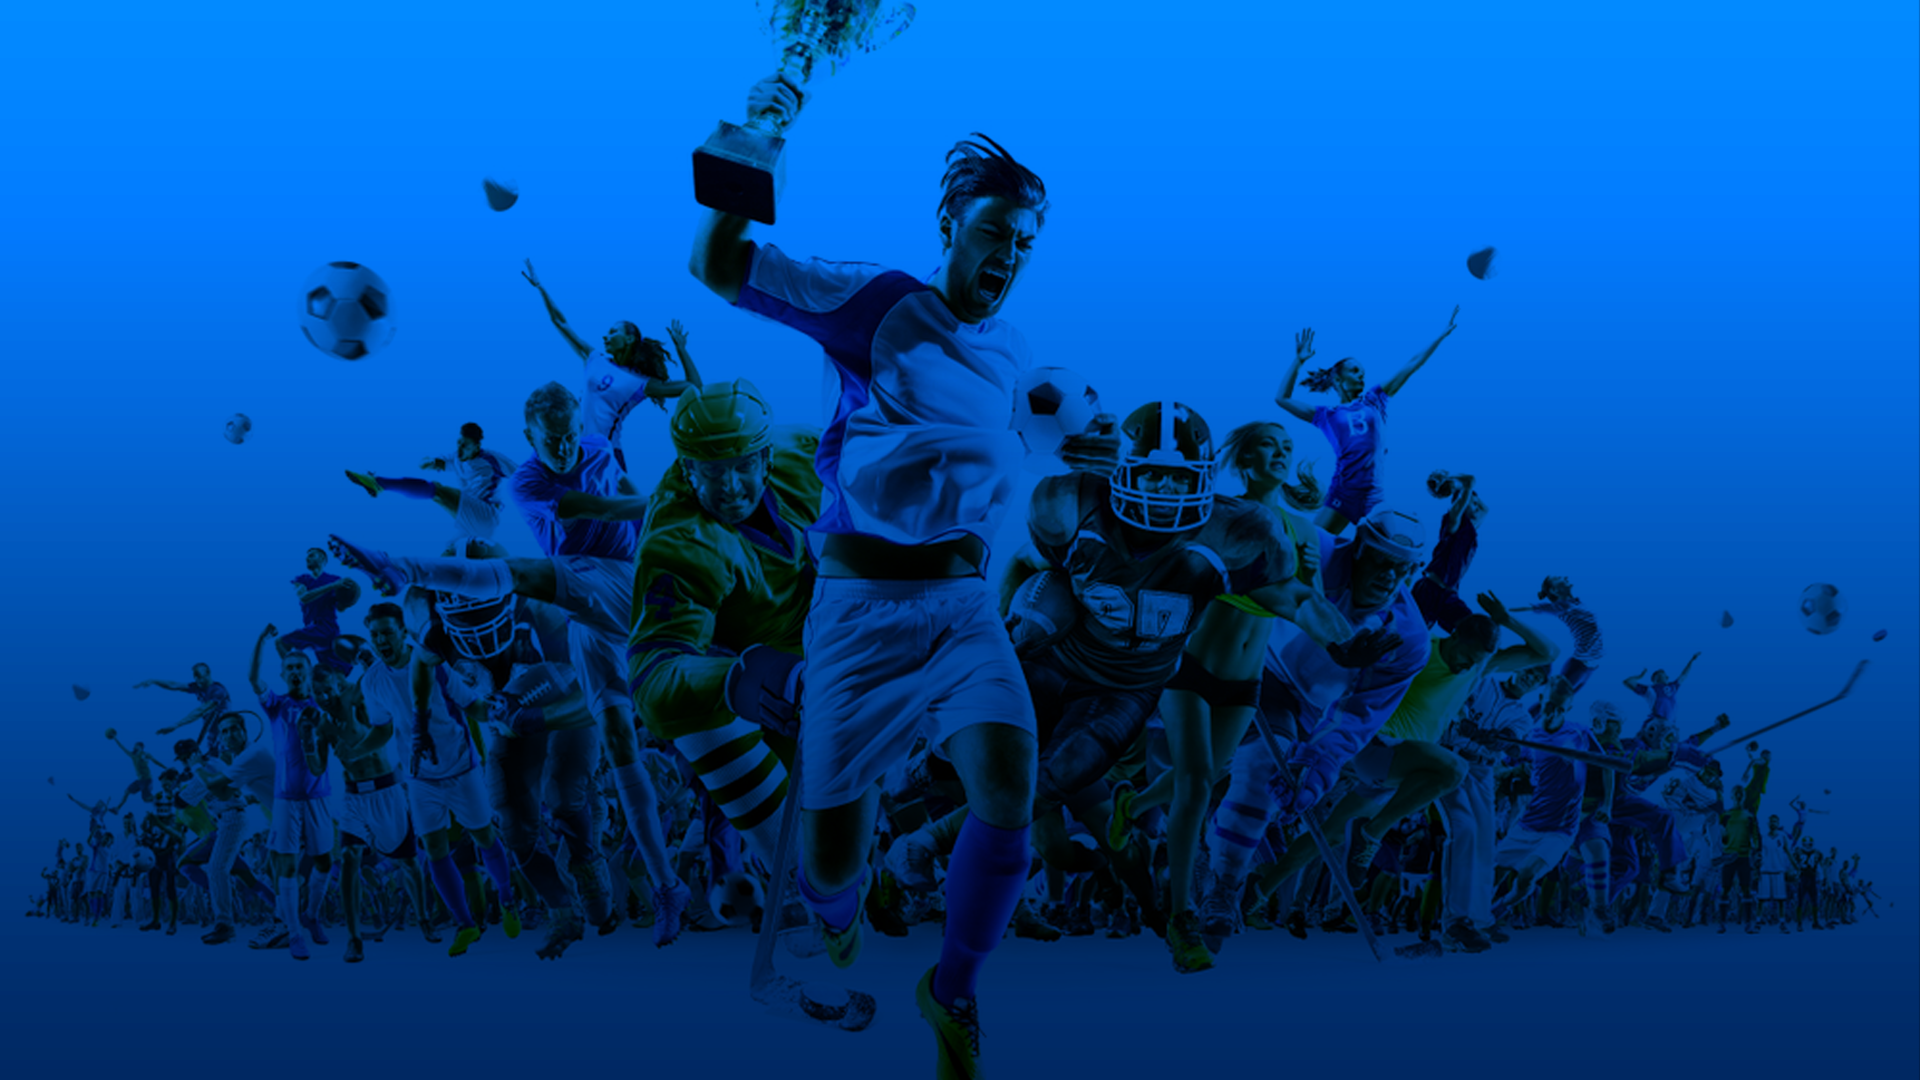 best fantasy sports apps development